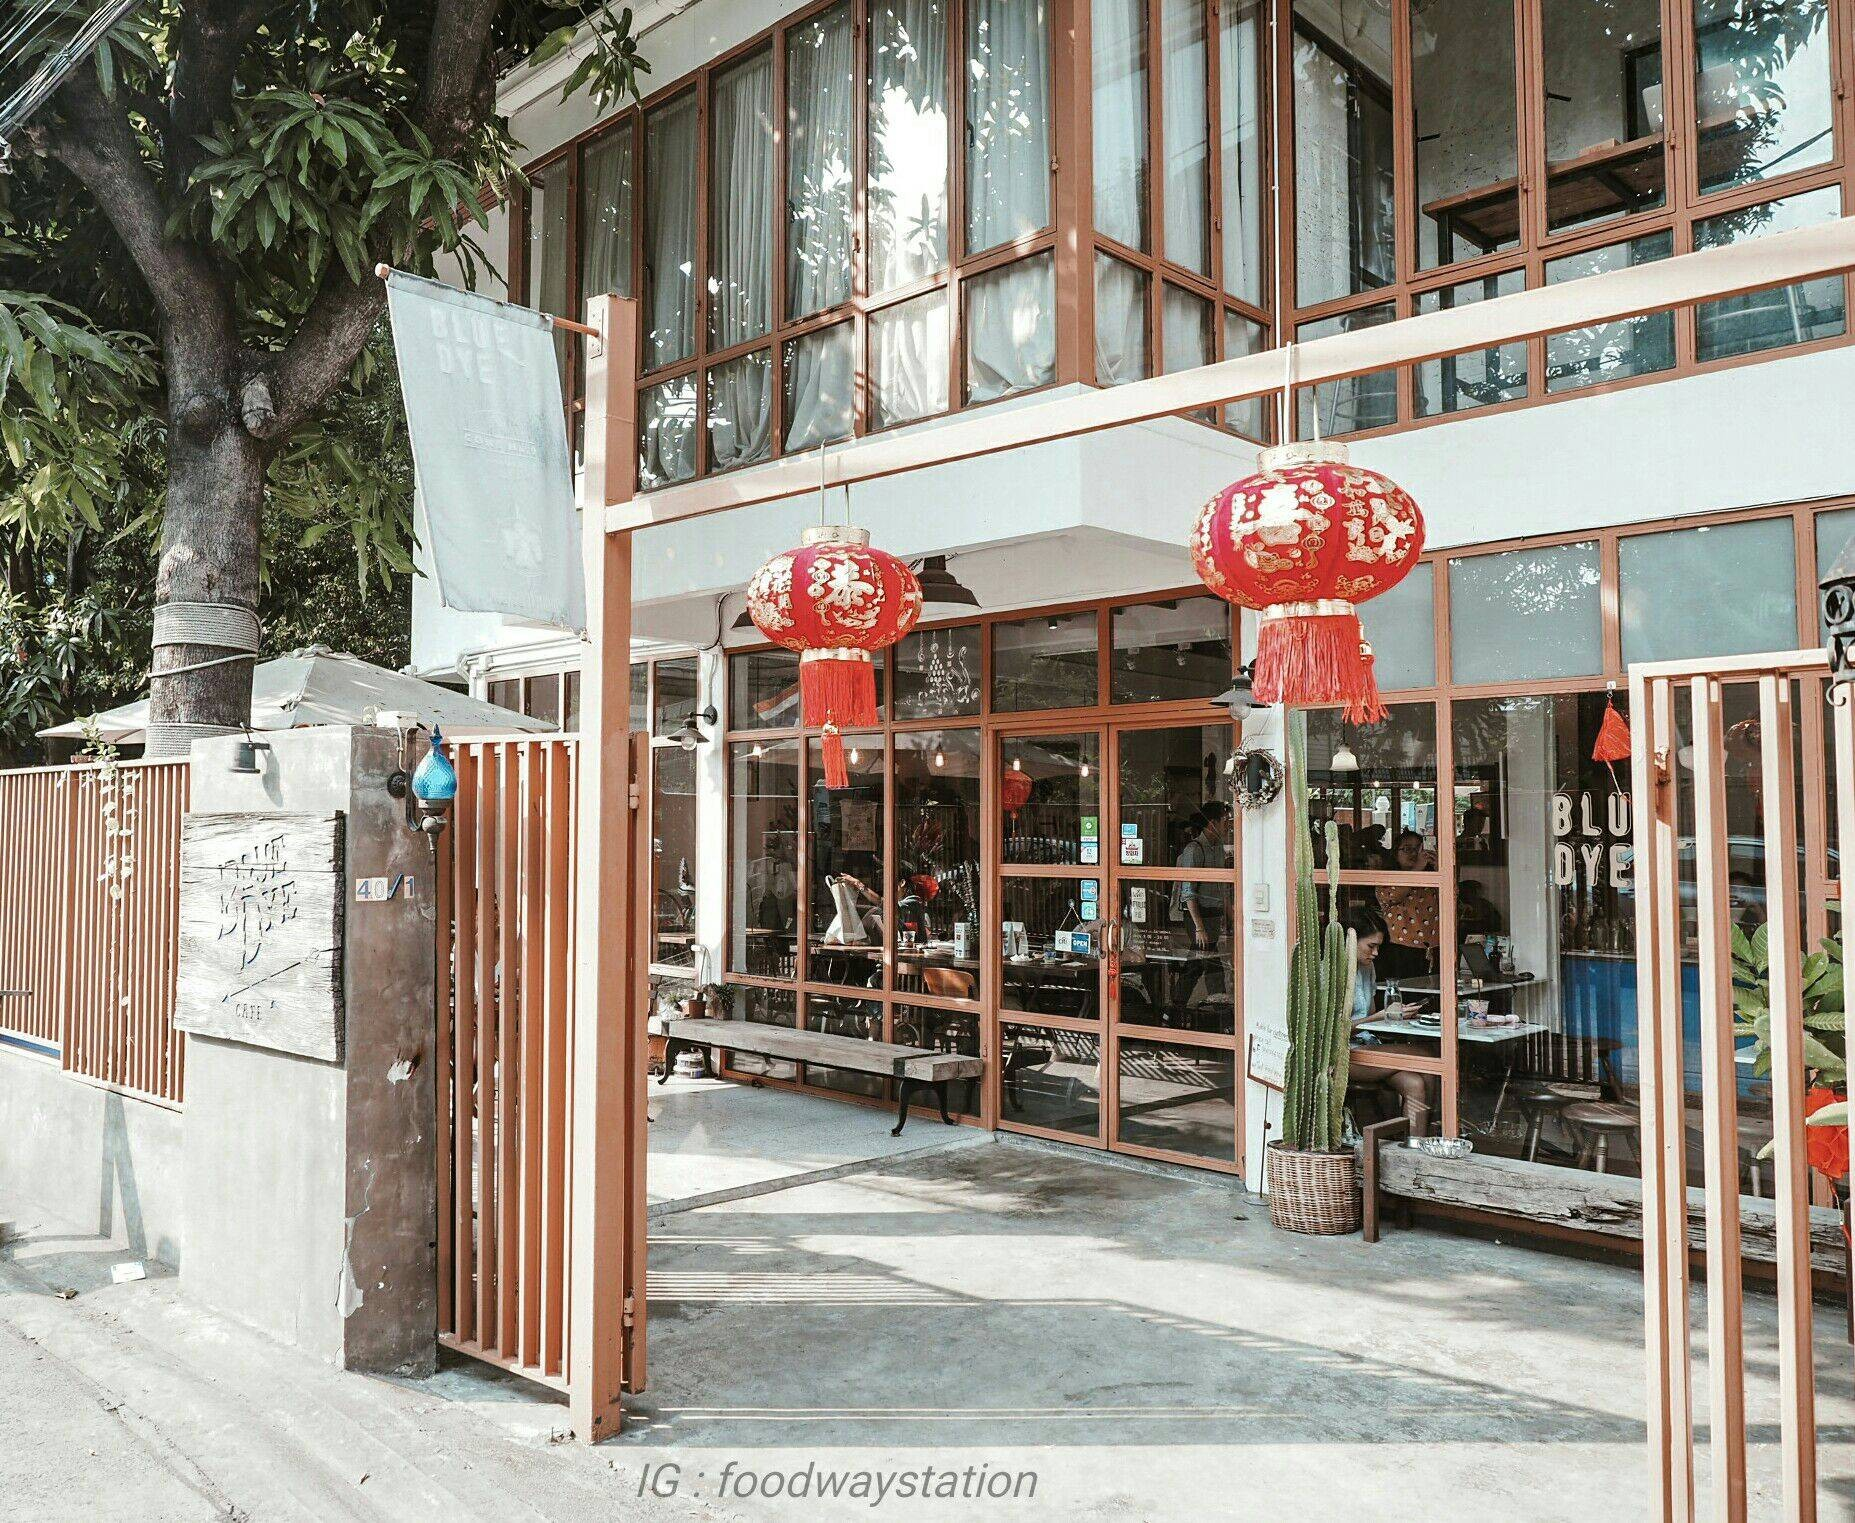 Blue Dye Cafe Sukhumvit 36